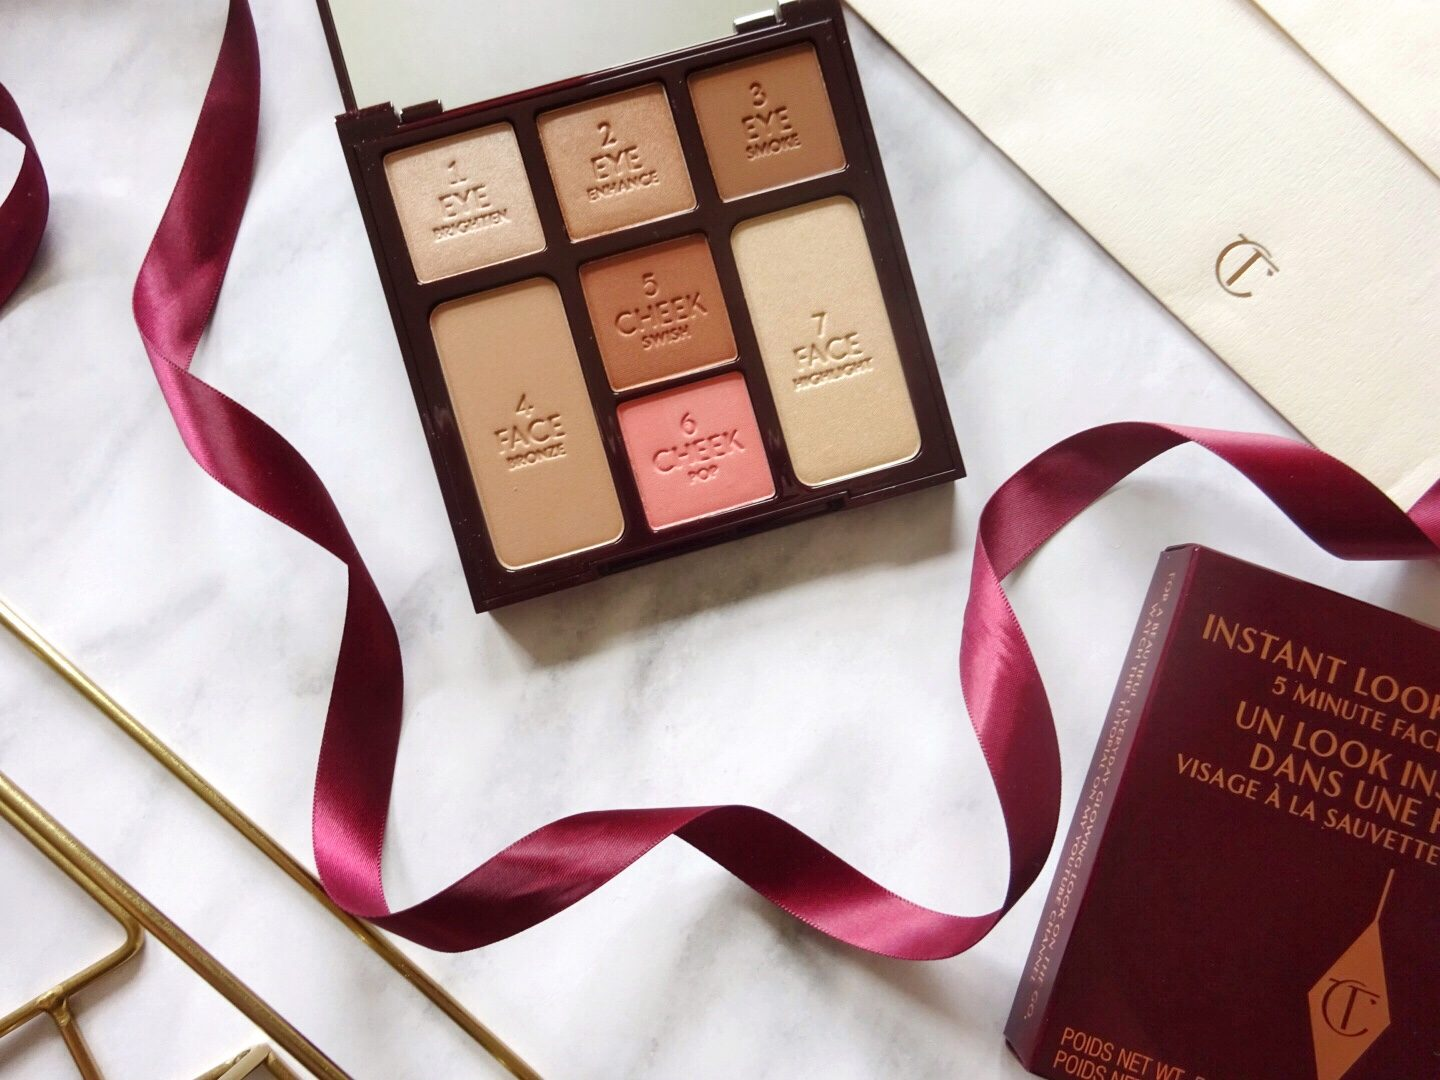 Charlotte Tilbury Instant Look In A Palette 'Beauty Glow' REVIEW